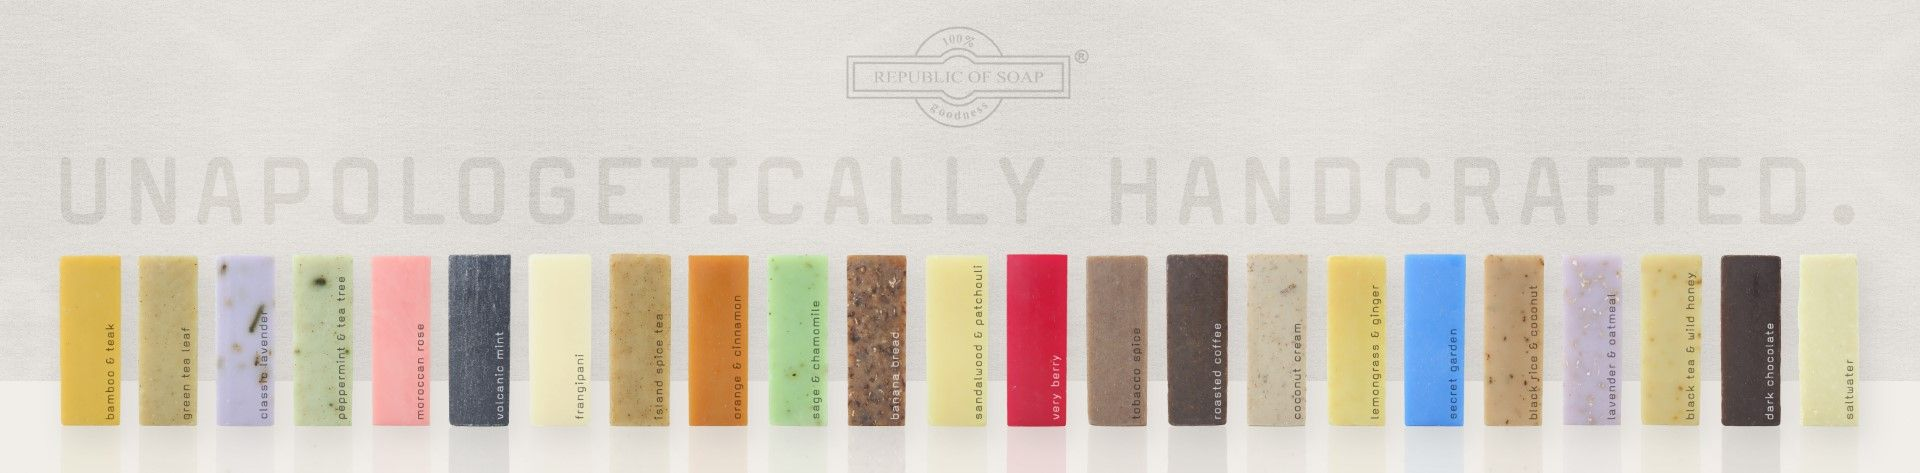 Republic of Soap Back to Basics Soap Line